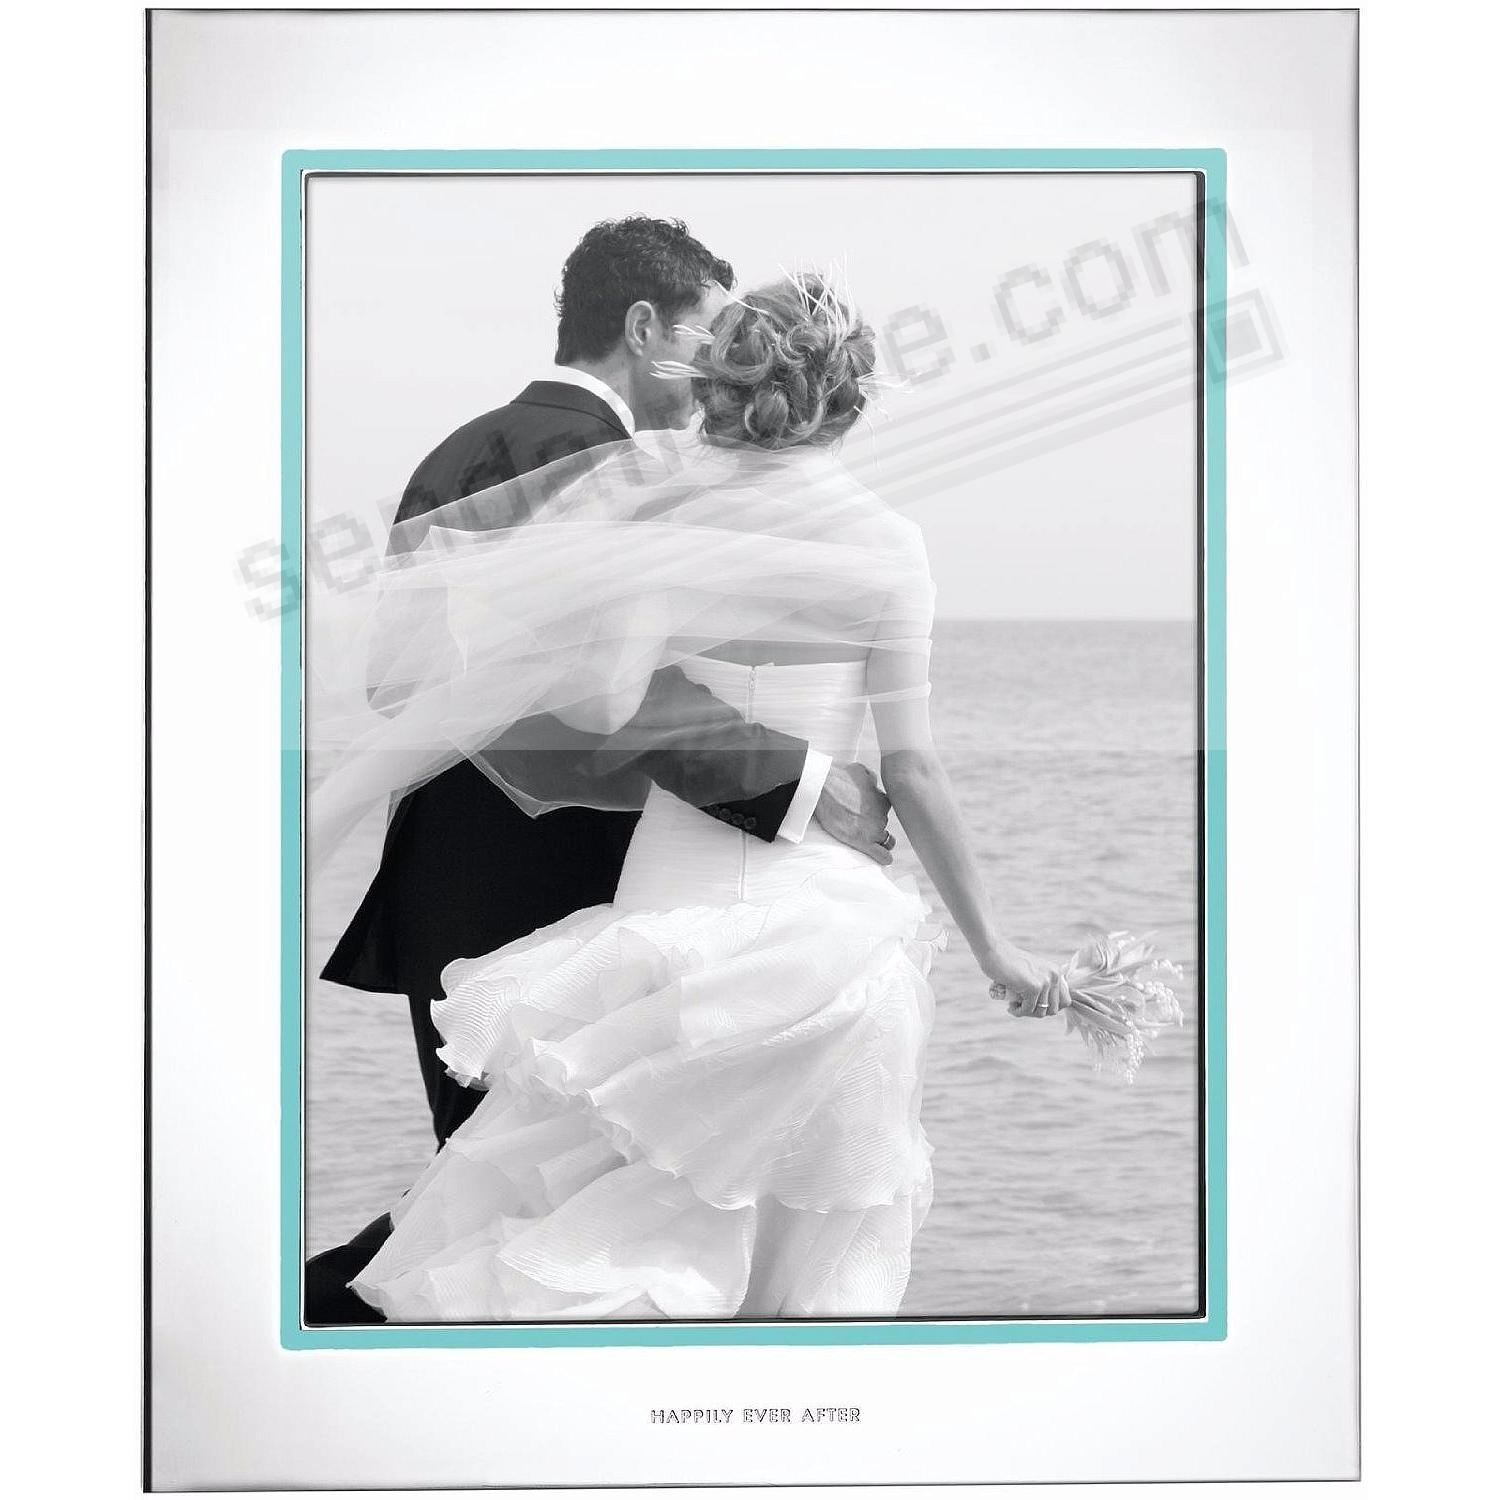 TAKE THE CAKE - HAPPILY EVER AFTER frame for 8x10 prints by kate spade new york®